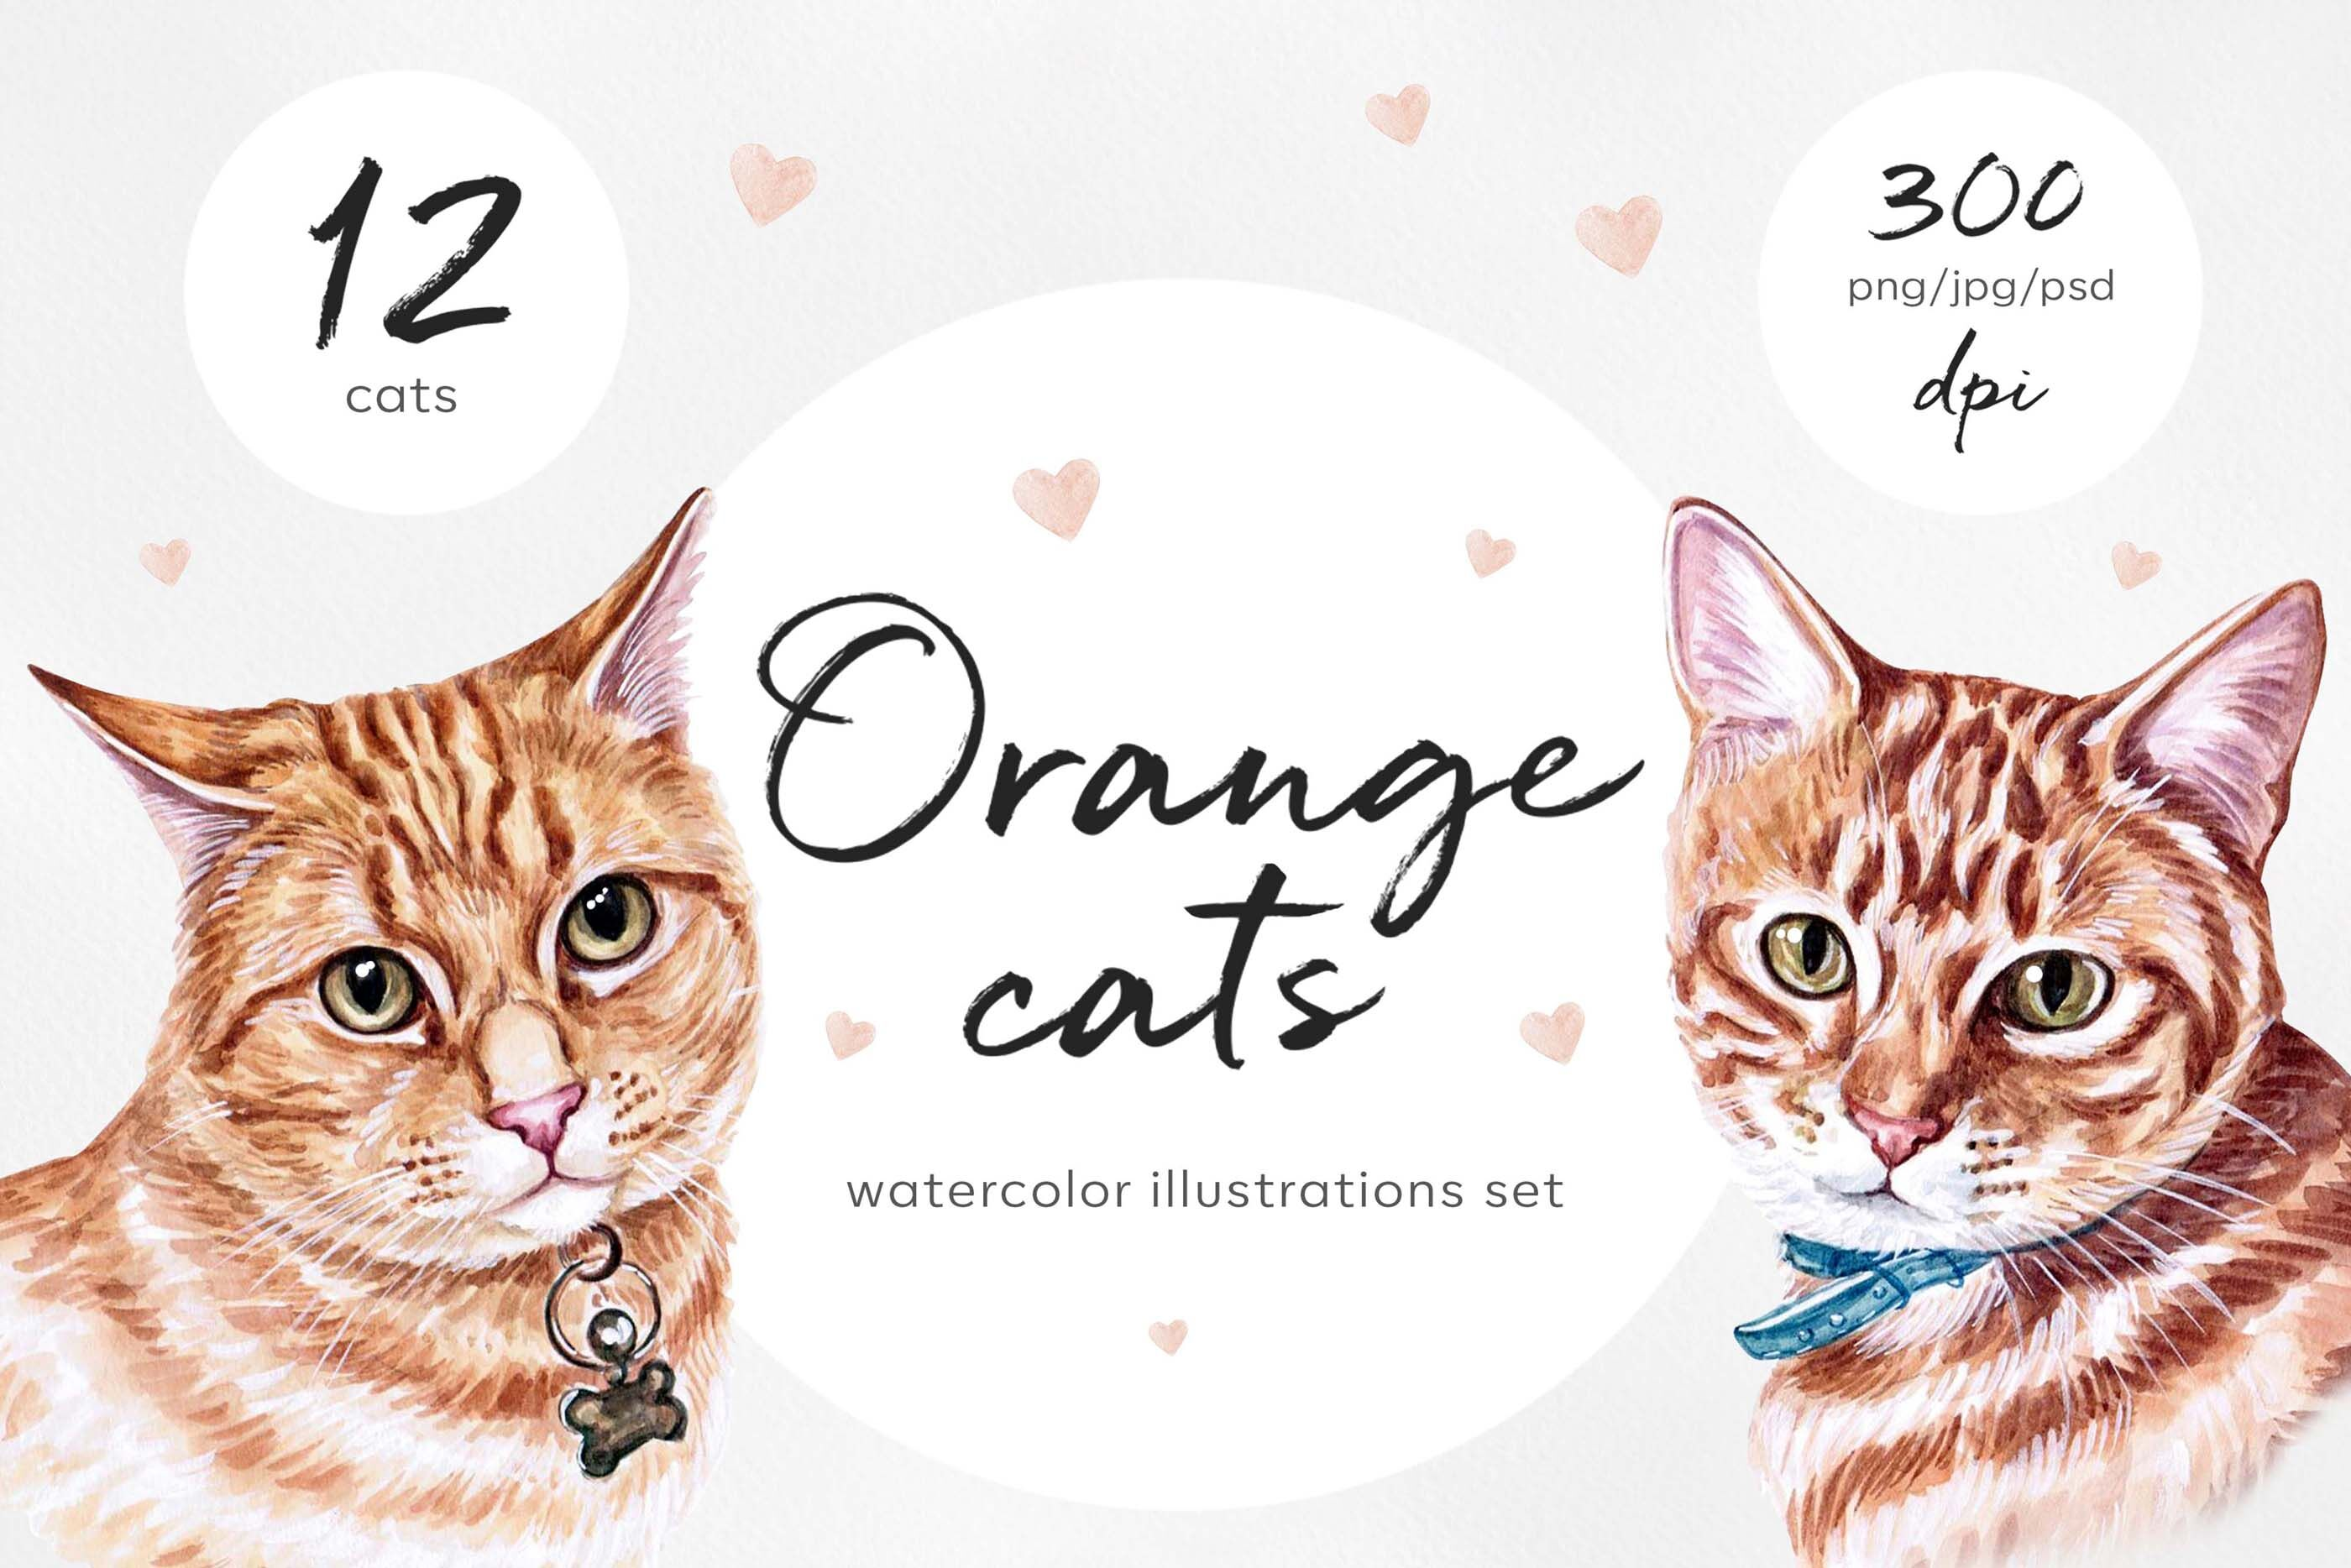 Watercolor Cat Illustrations Cute 12 Cats Kitty Meow By Susik